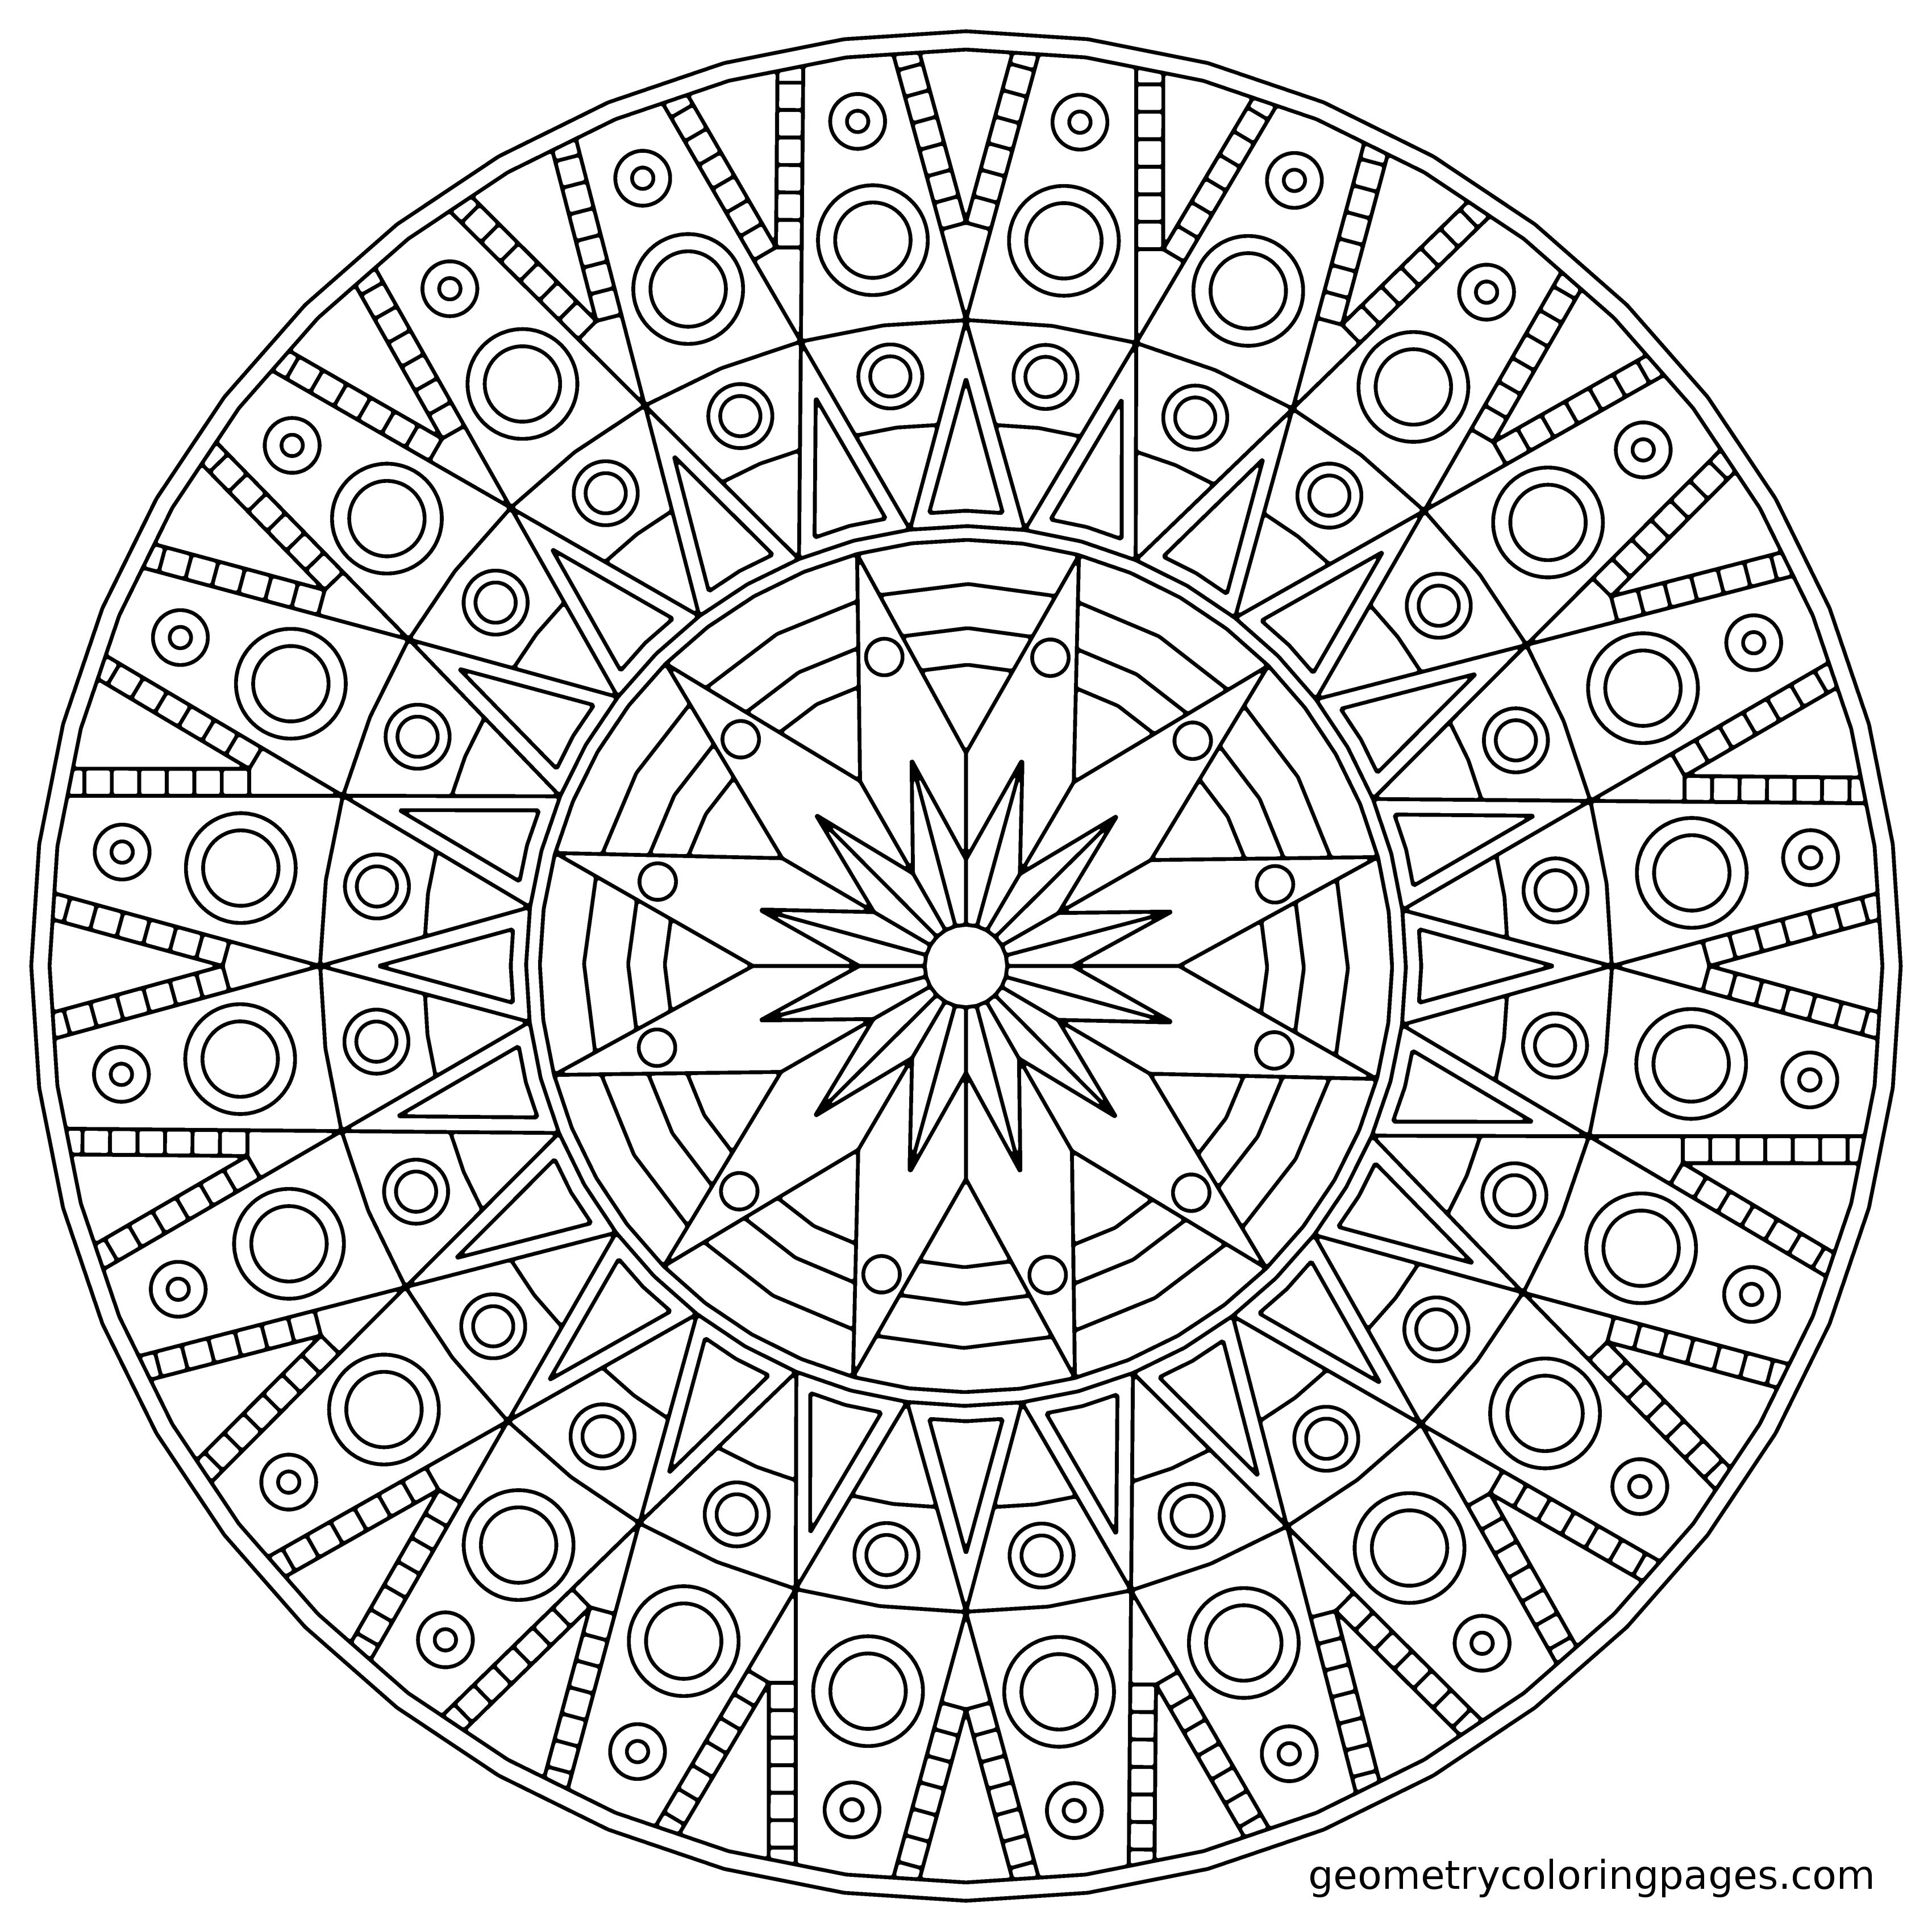 3400x3400 Printable Mandala Coloring Pages Free Coloring Pages Free